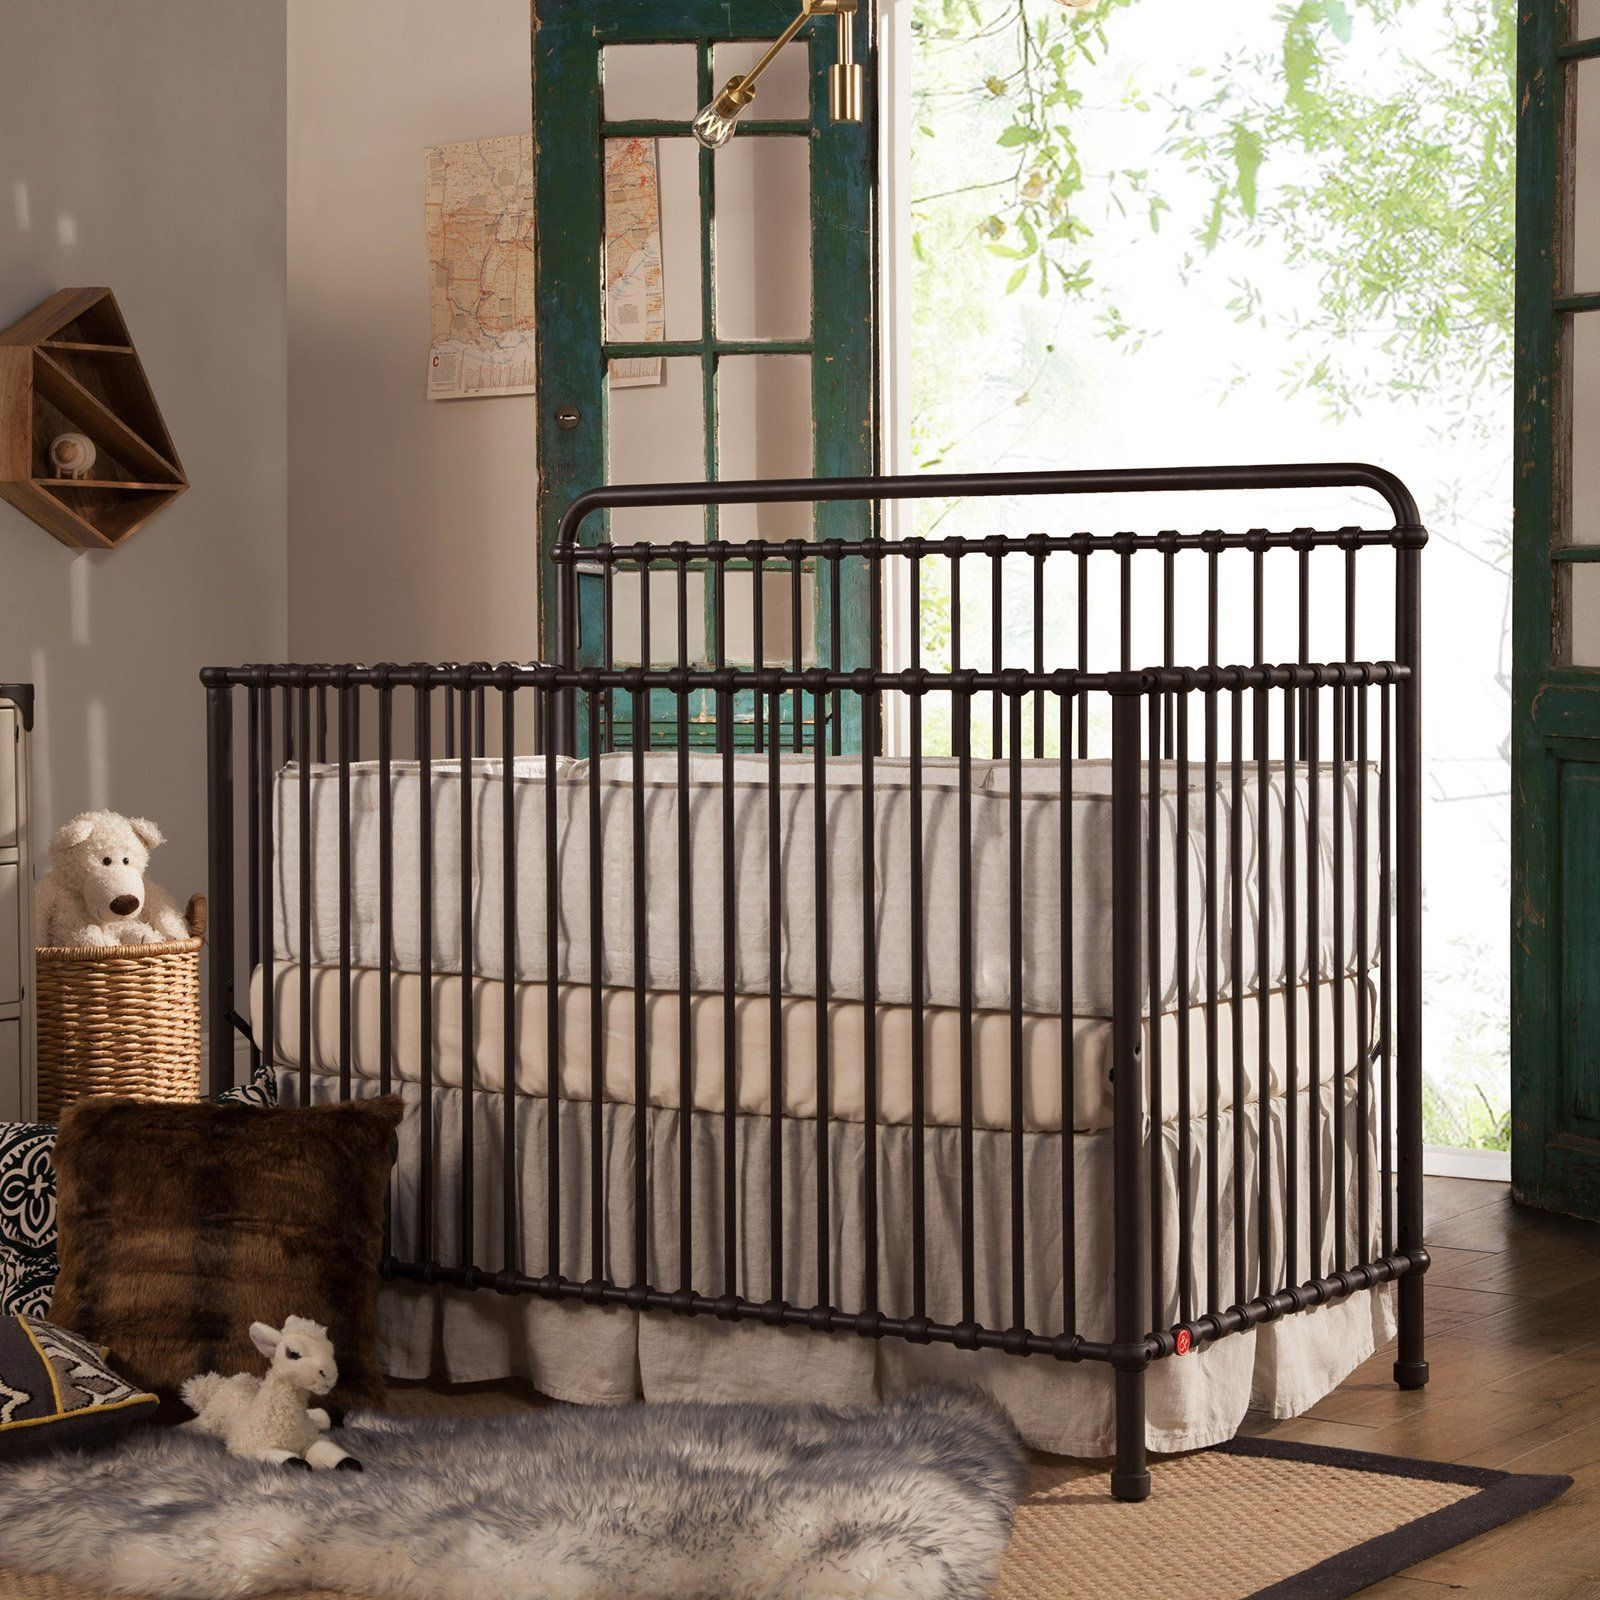 Crib for sale in palm bay - Franklin Ben Winston 4 In 1 Convertible Iron Crib From Hayneedle